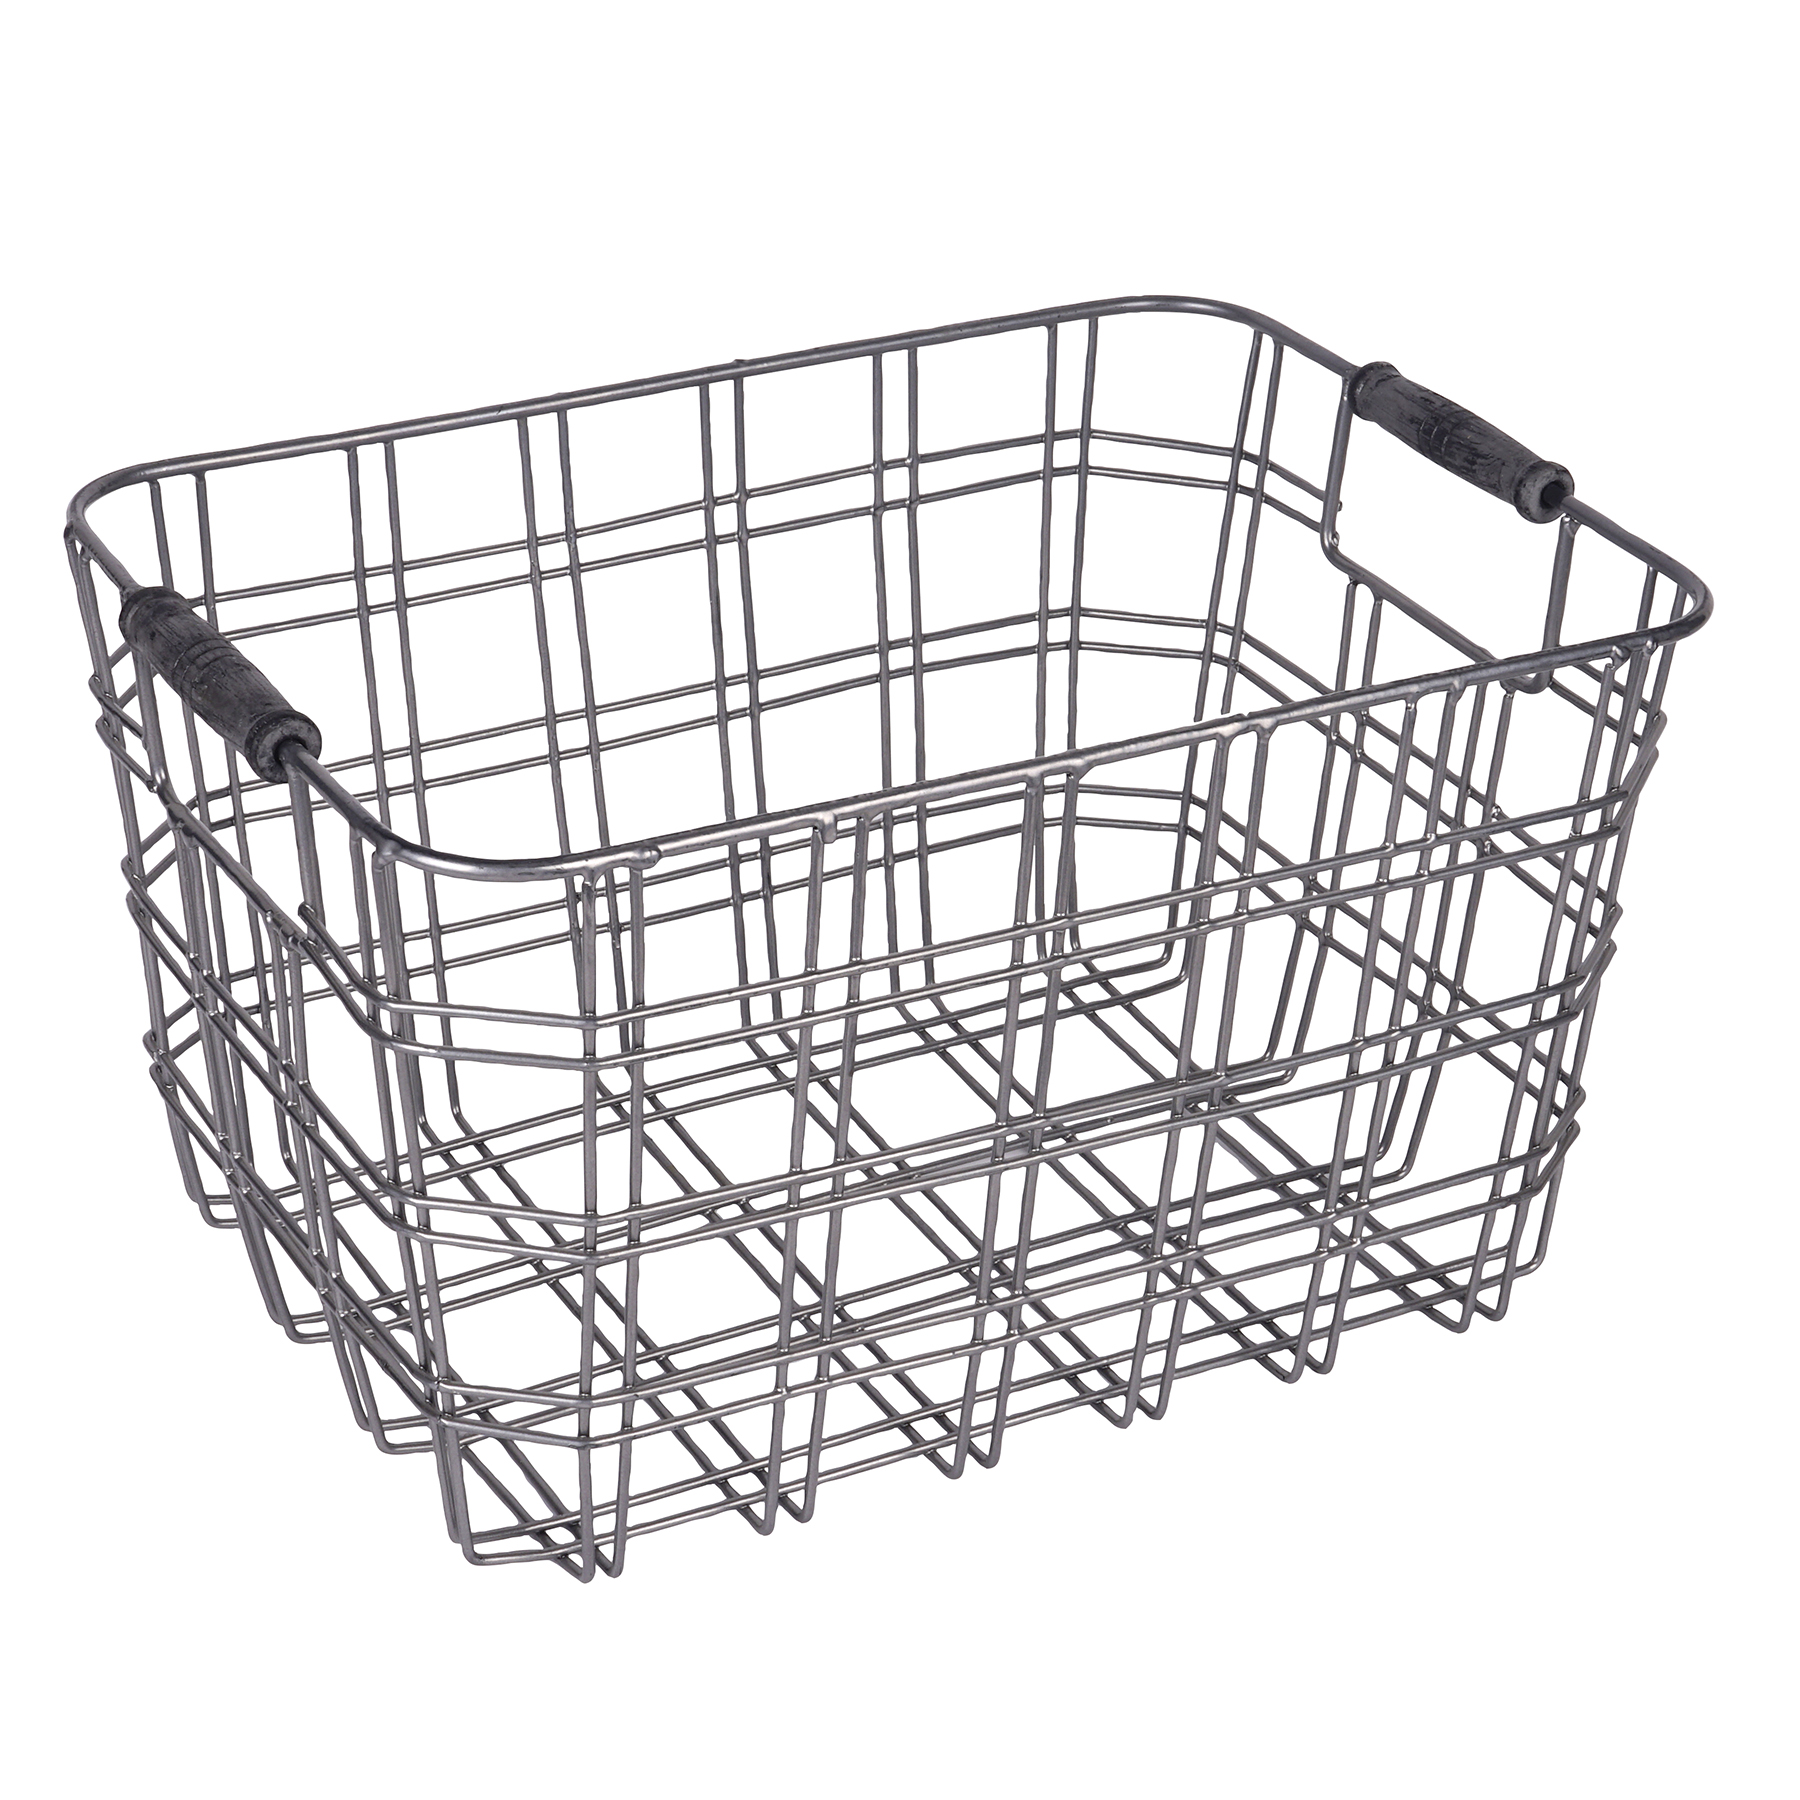 The Small Metal Wire Basket With Wooden Handles By Ashland At Rh Michaels Com En Baskets Round Liner